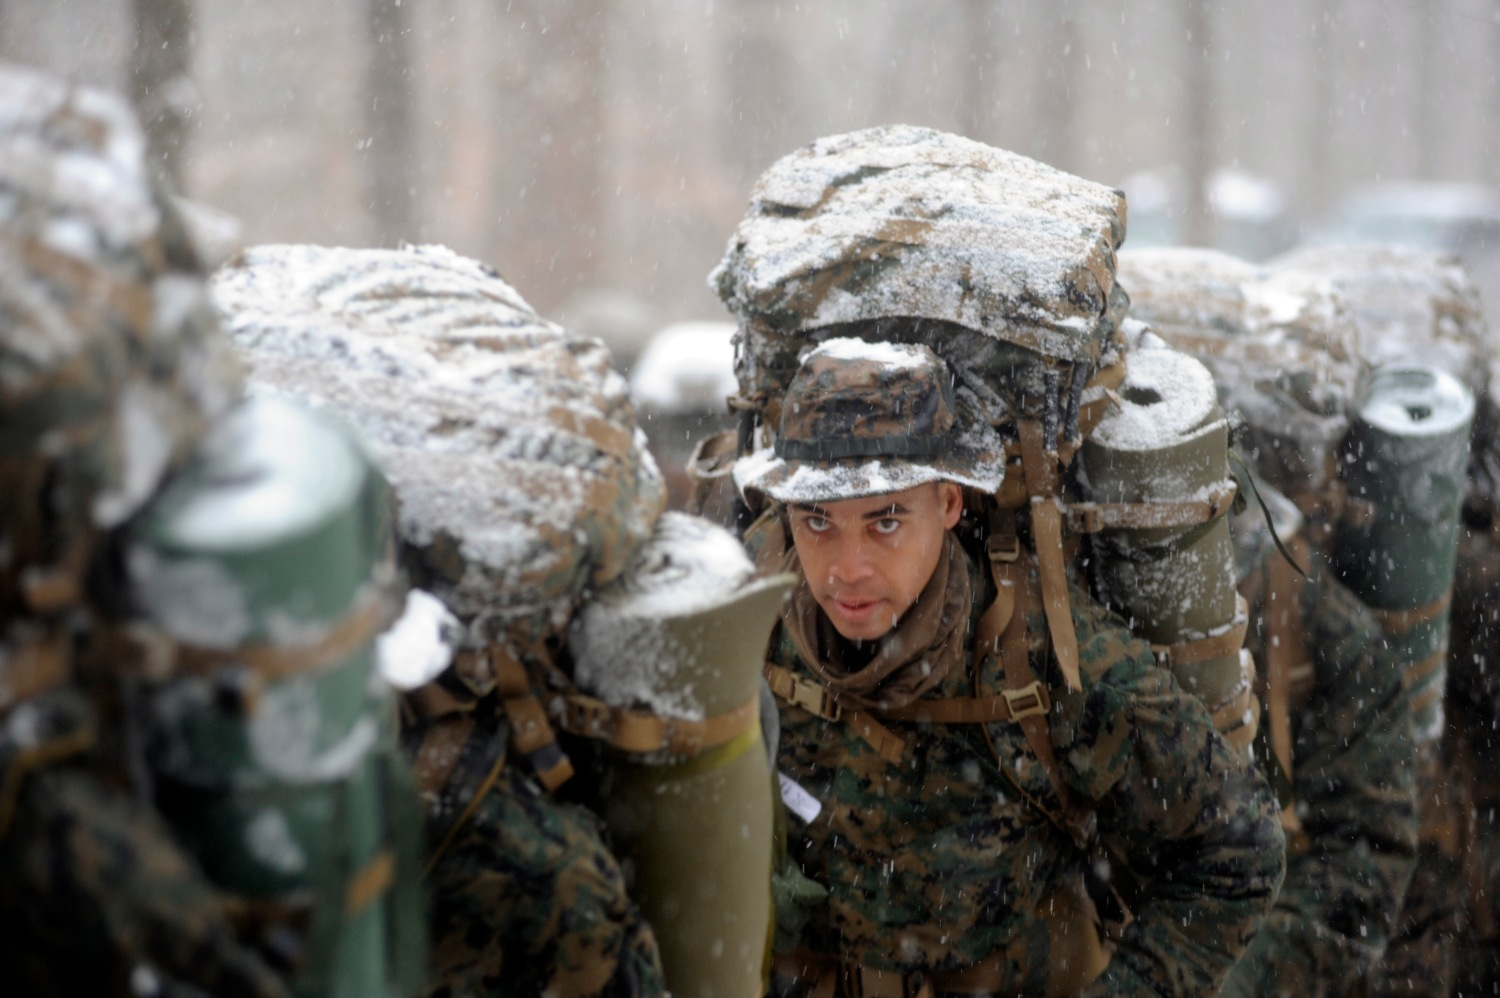 5 tips to survive ocs in winter